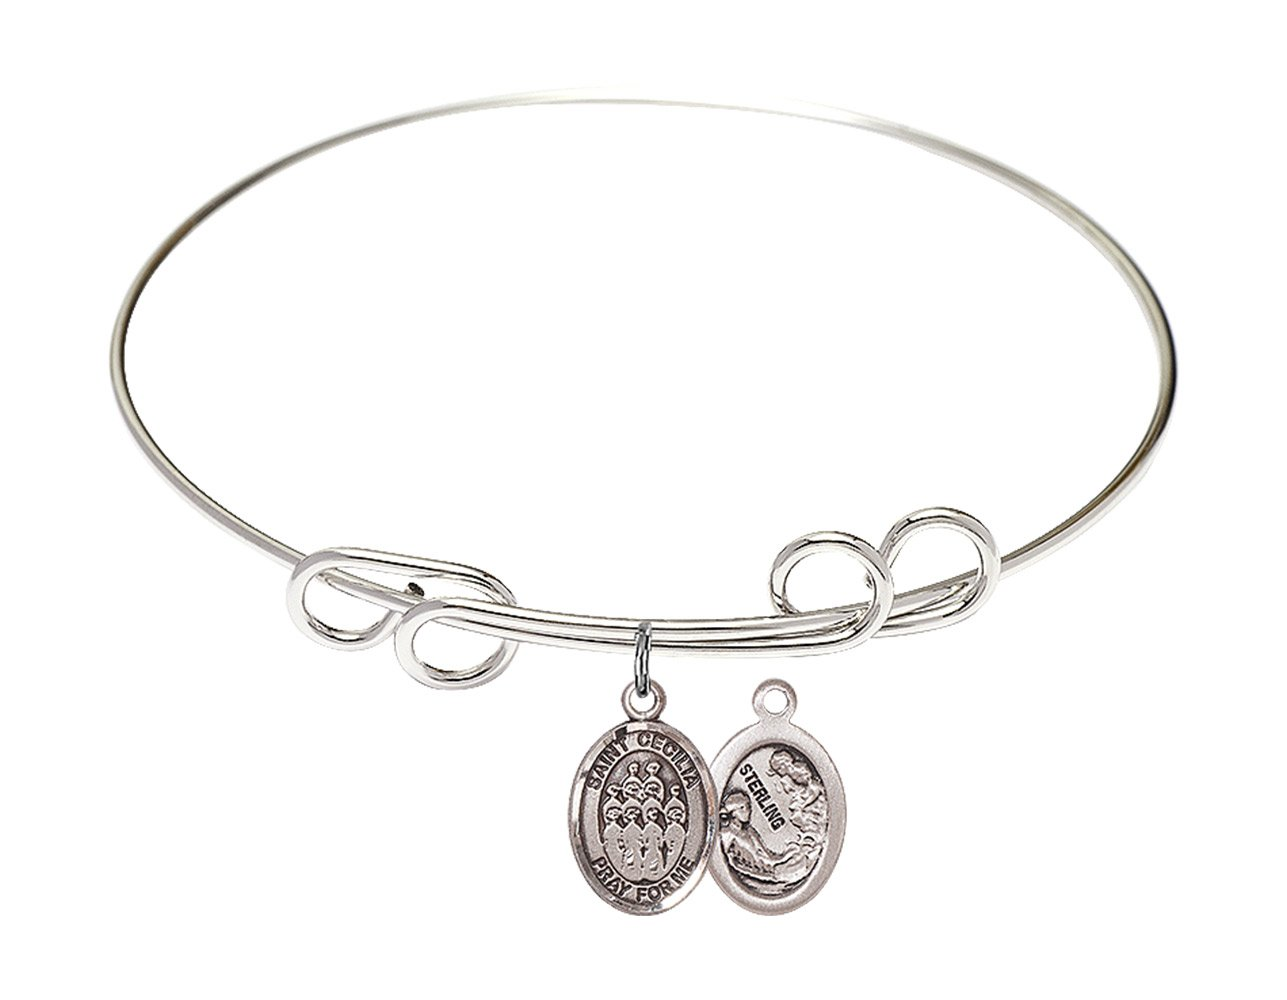 8 inch Round Double Loop Bangle Bracelet w/St. Cecilia/Choir in Sterling Silver